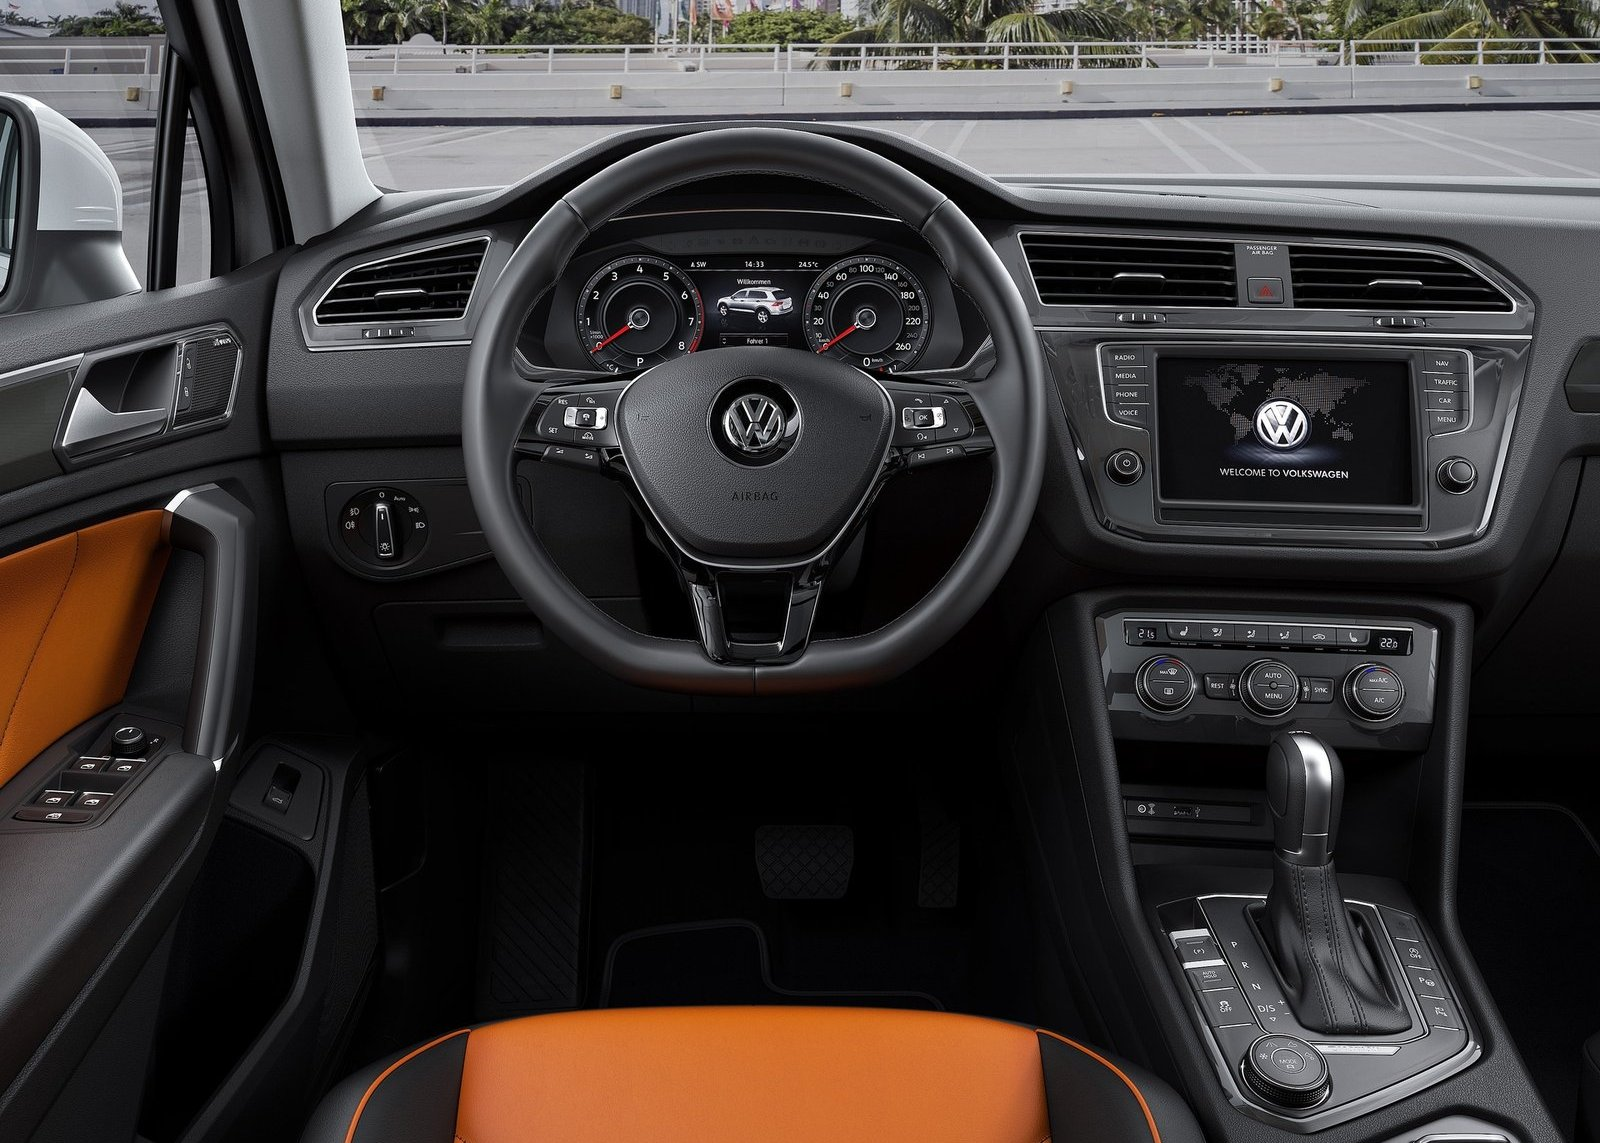 2018 VW Tiguan interior photo